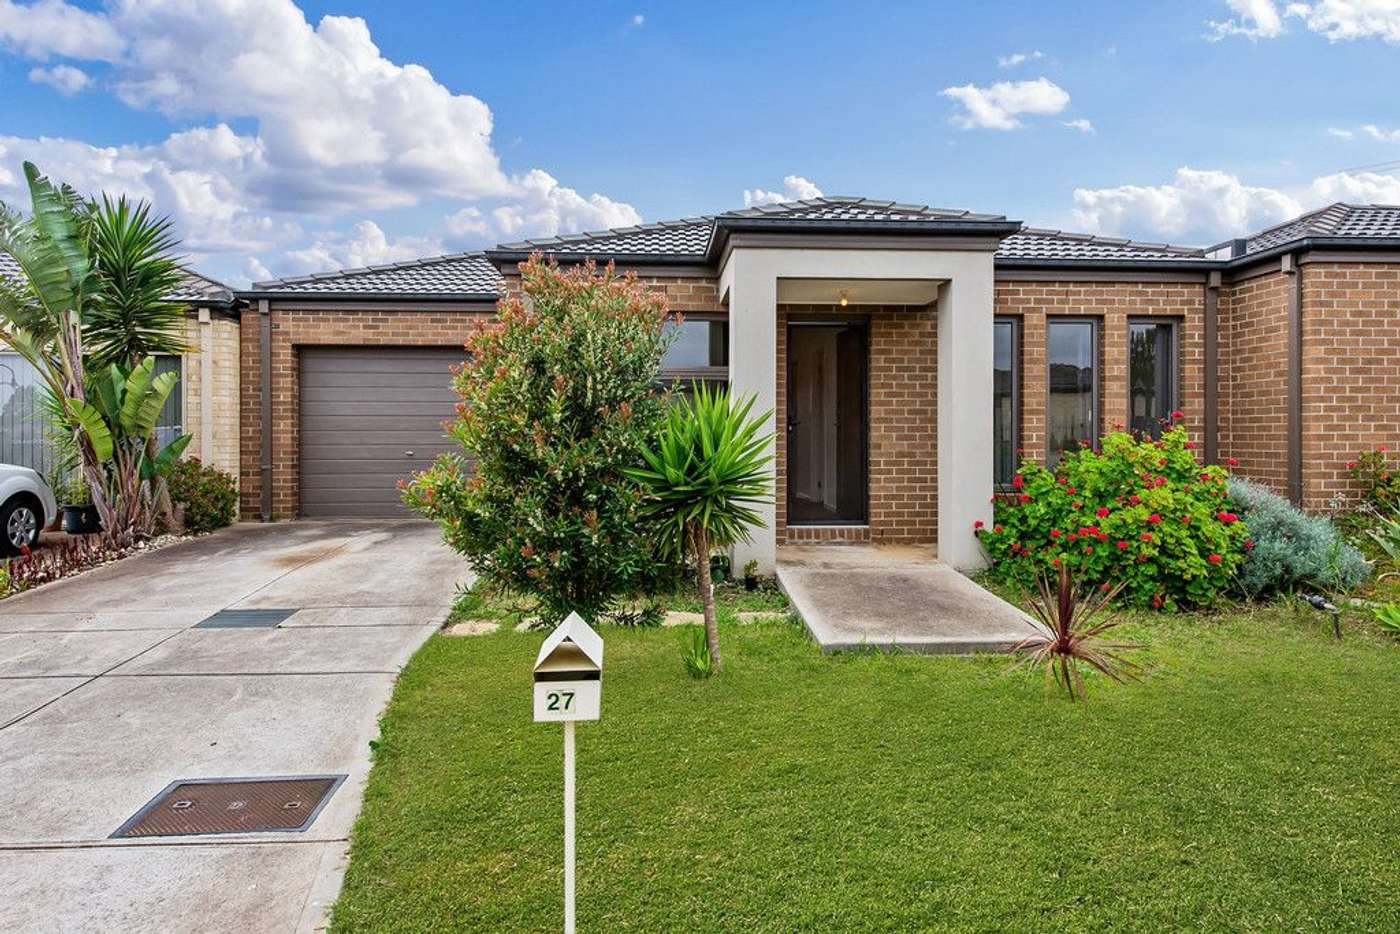 Main view of Homely house listing, 27 Silverleaf Drive, Melton VIC 3337